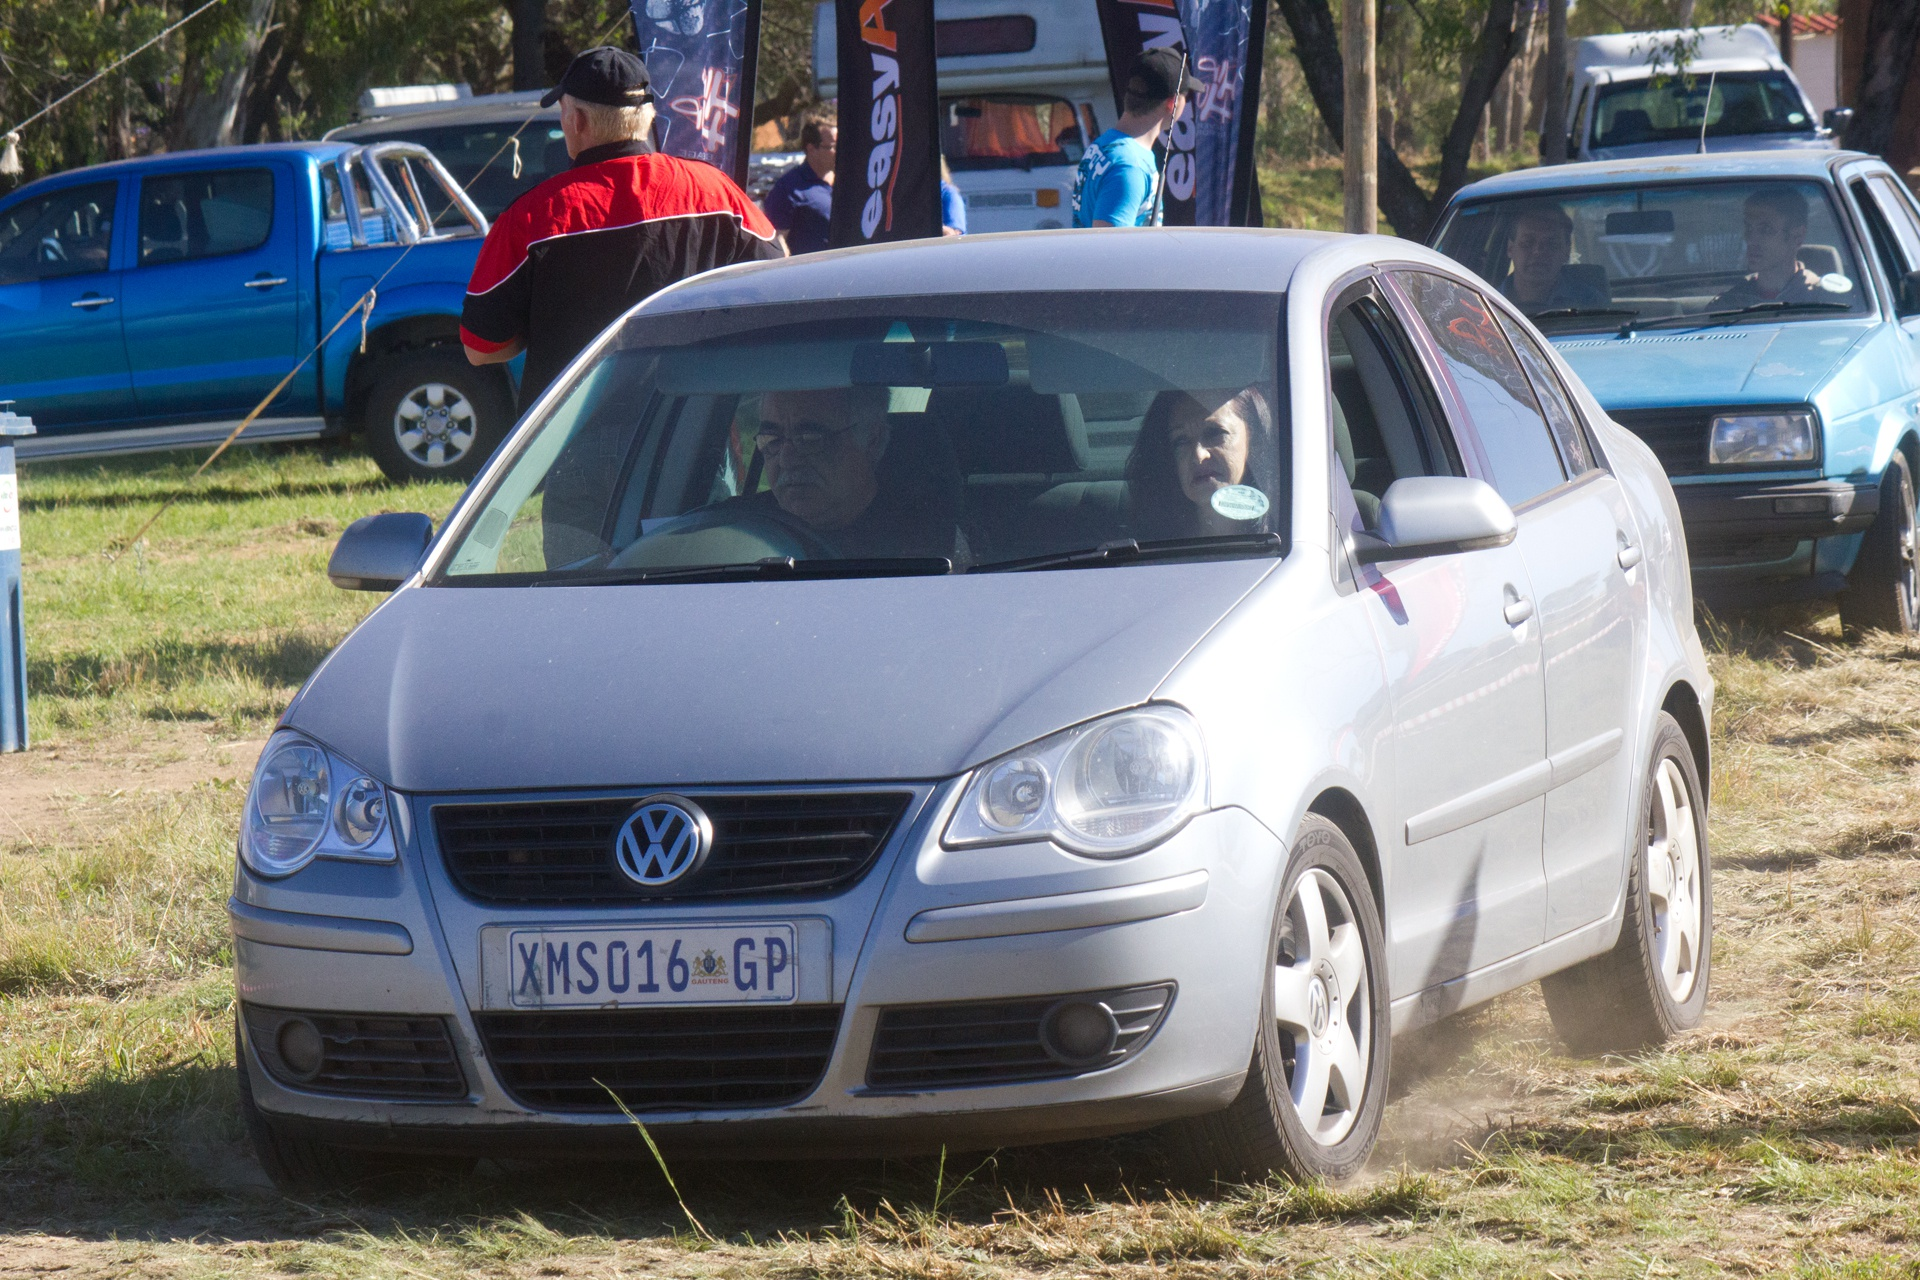 Volkswagen South Africa Festival Images And Photographs-3260